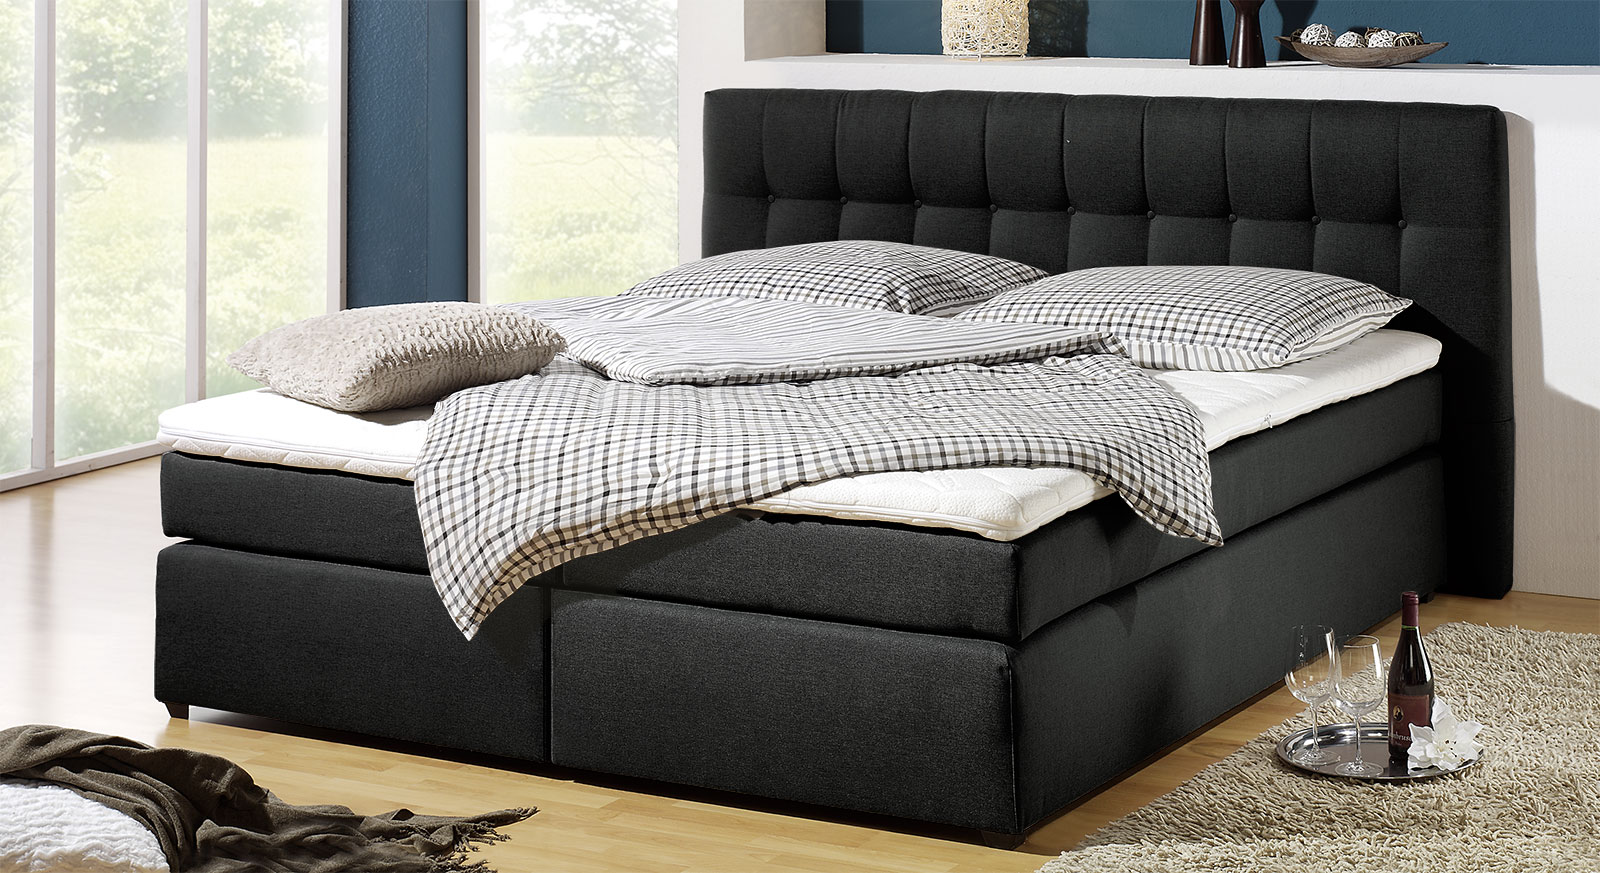 boxspringbett in h3 bis 130kg k rpergewicht chicago. Black Bedroom Furniture Sets. Home Design Ideas